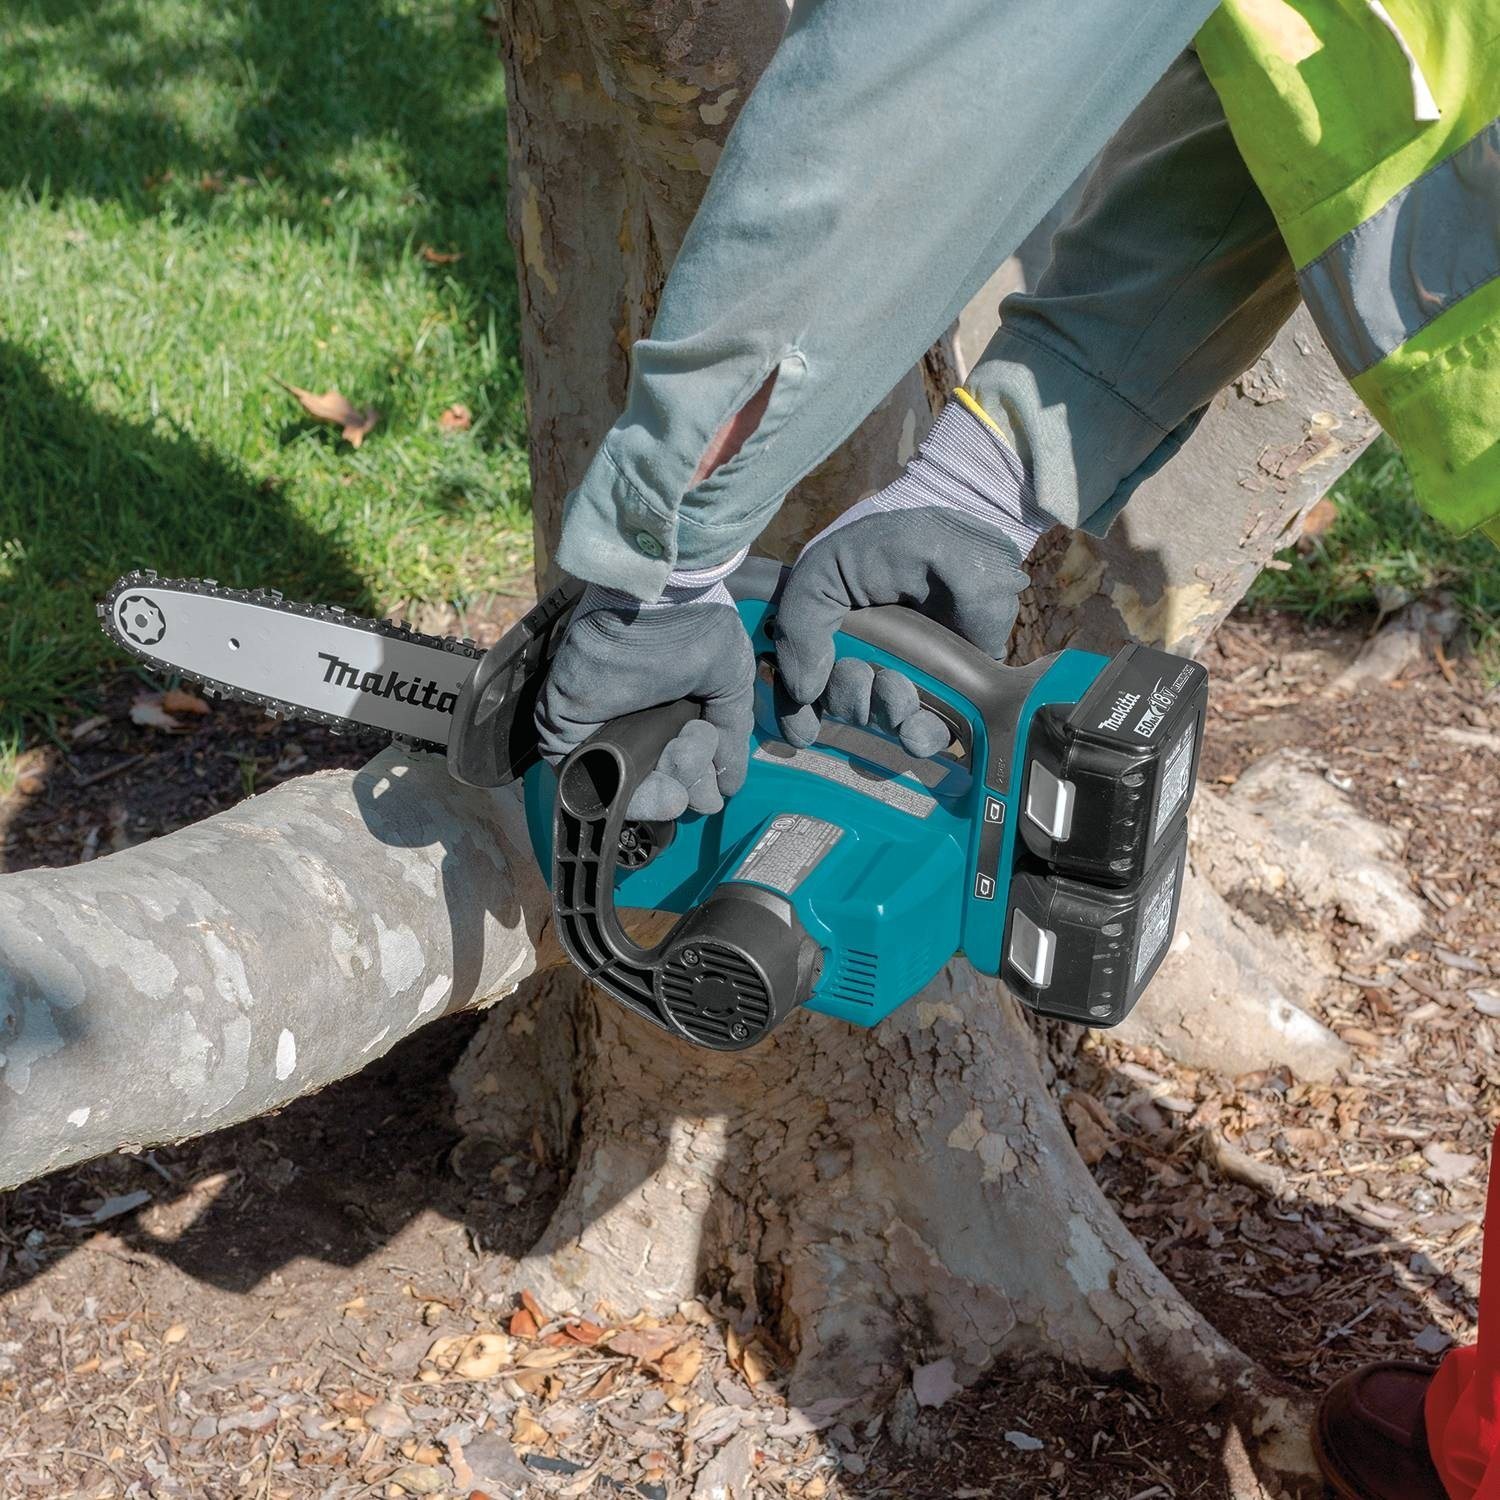 Makita XCU02PT1 Chainsaws product image 7